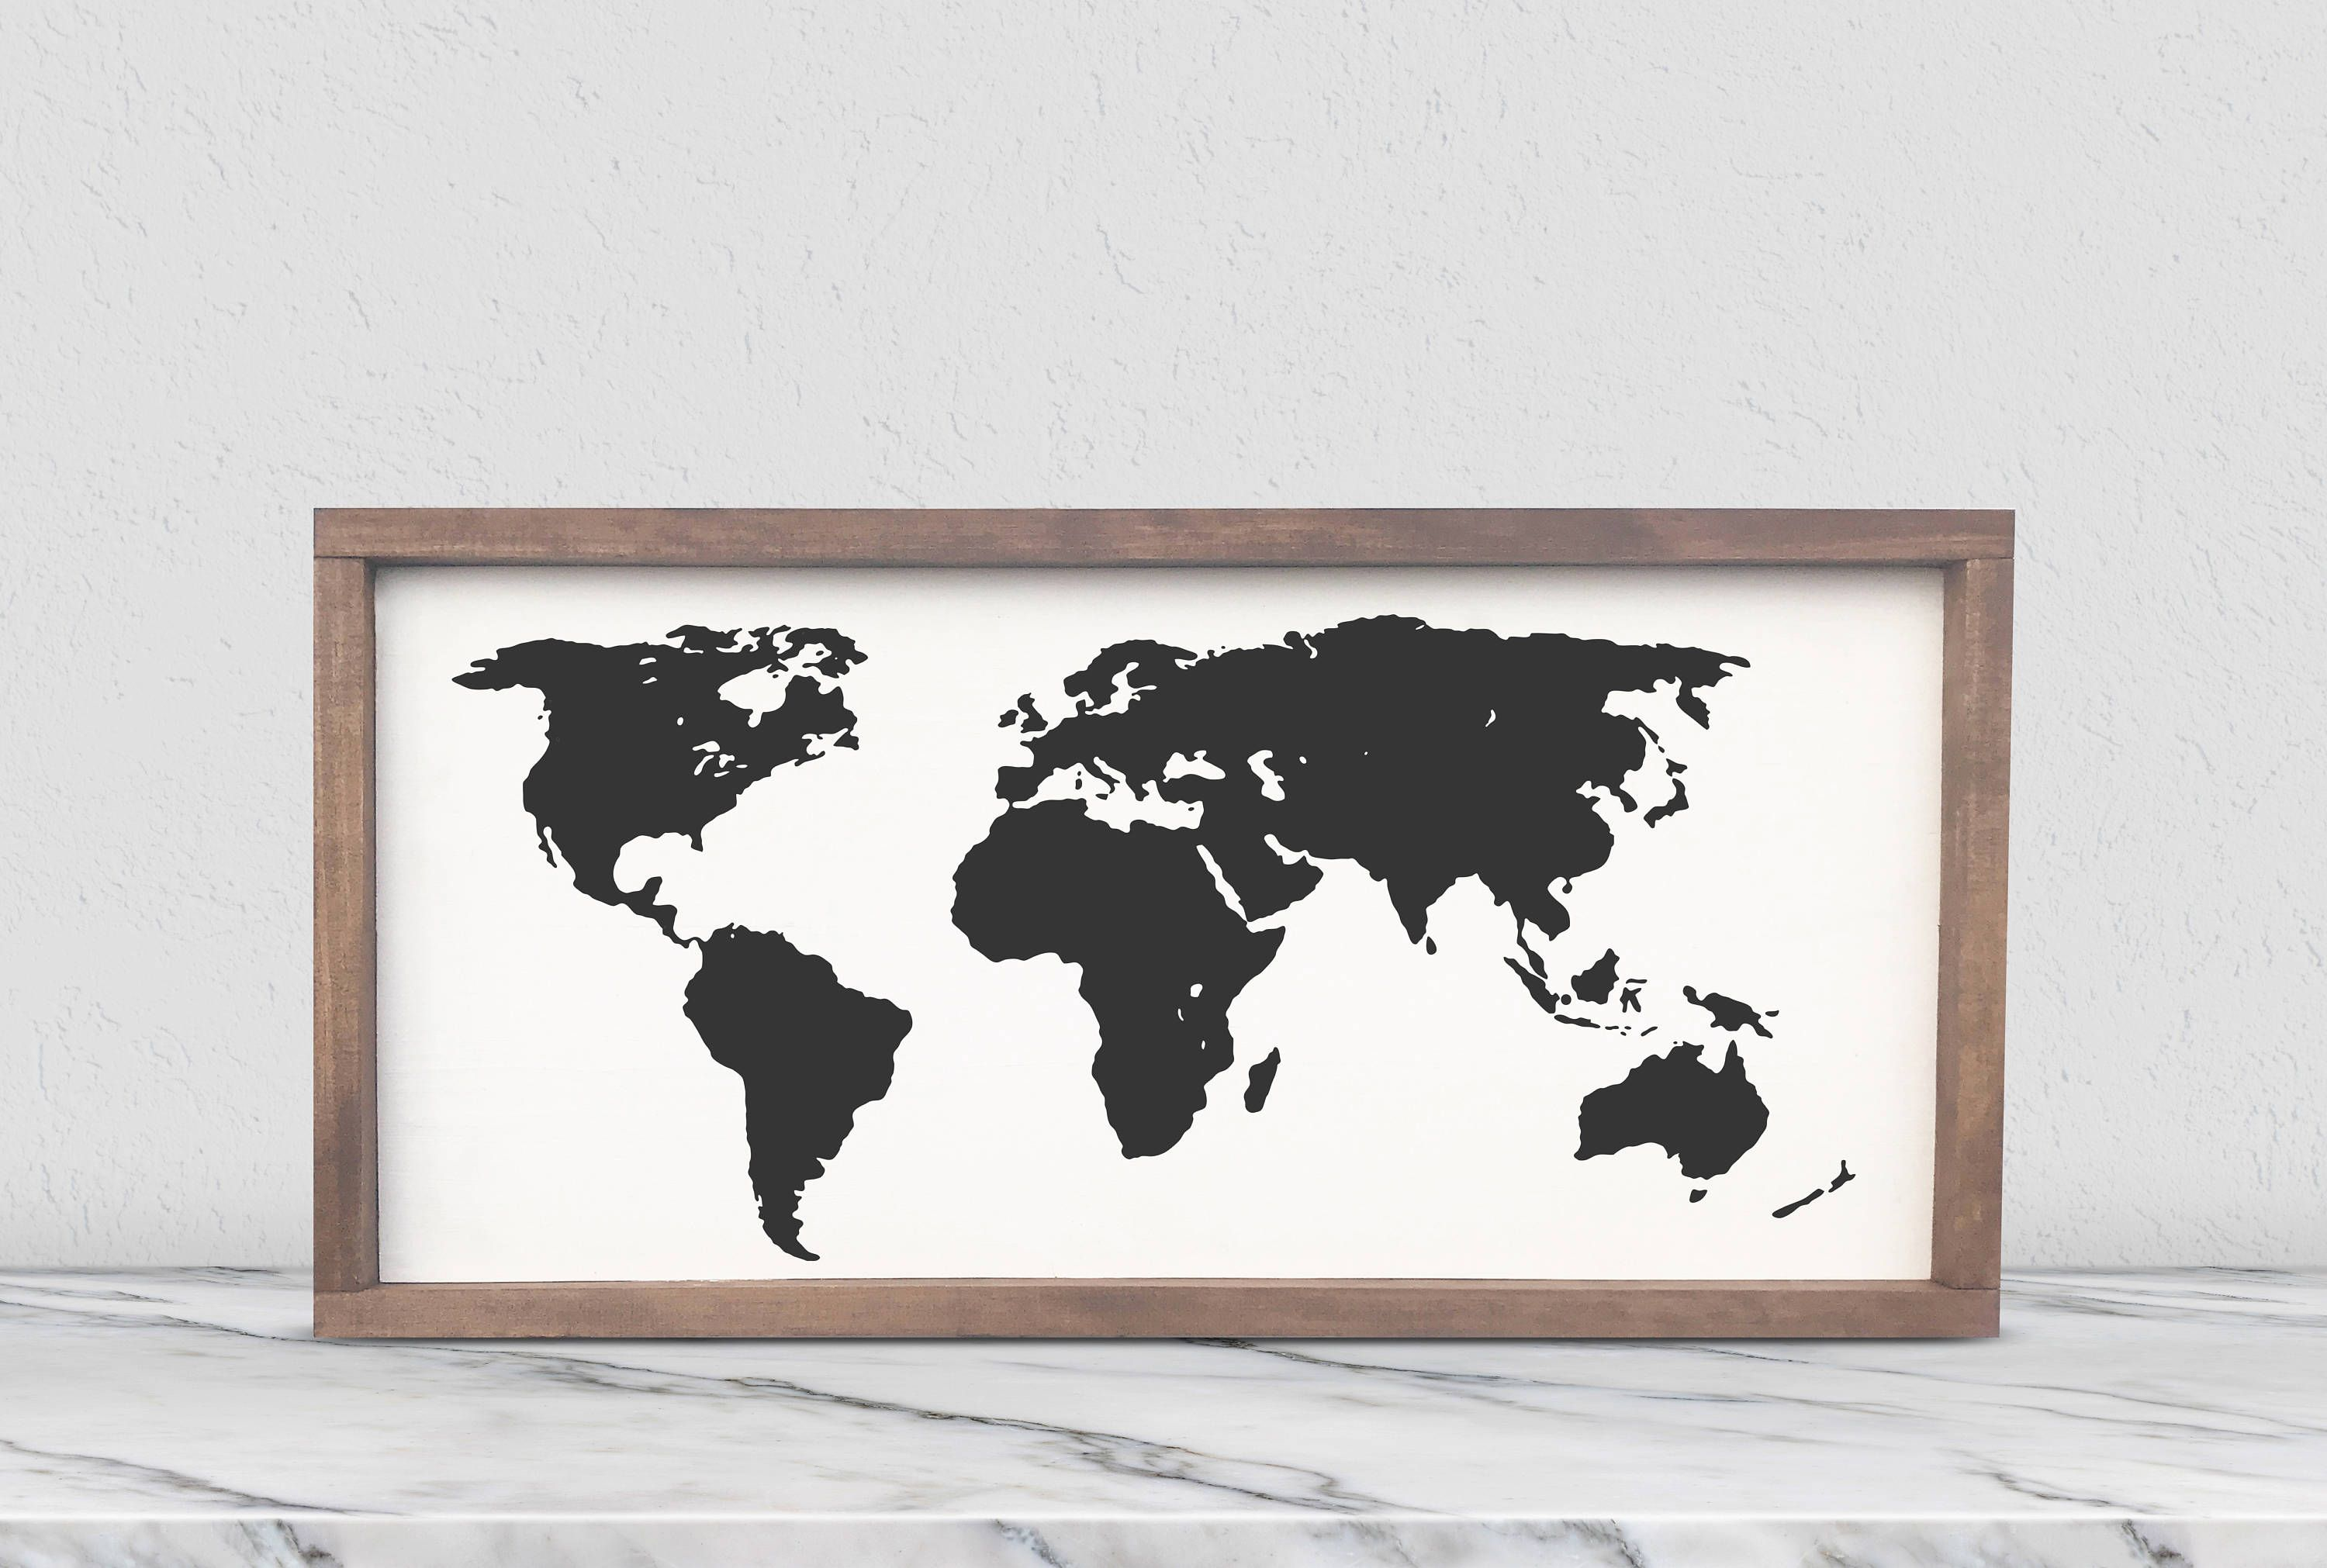 New items in my etsy shop world map framed wooden sign living new items in my etsy shop world map framed wooden sign living decor gumiabroncs Image collections